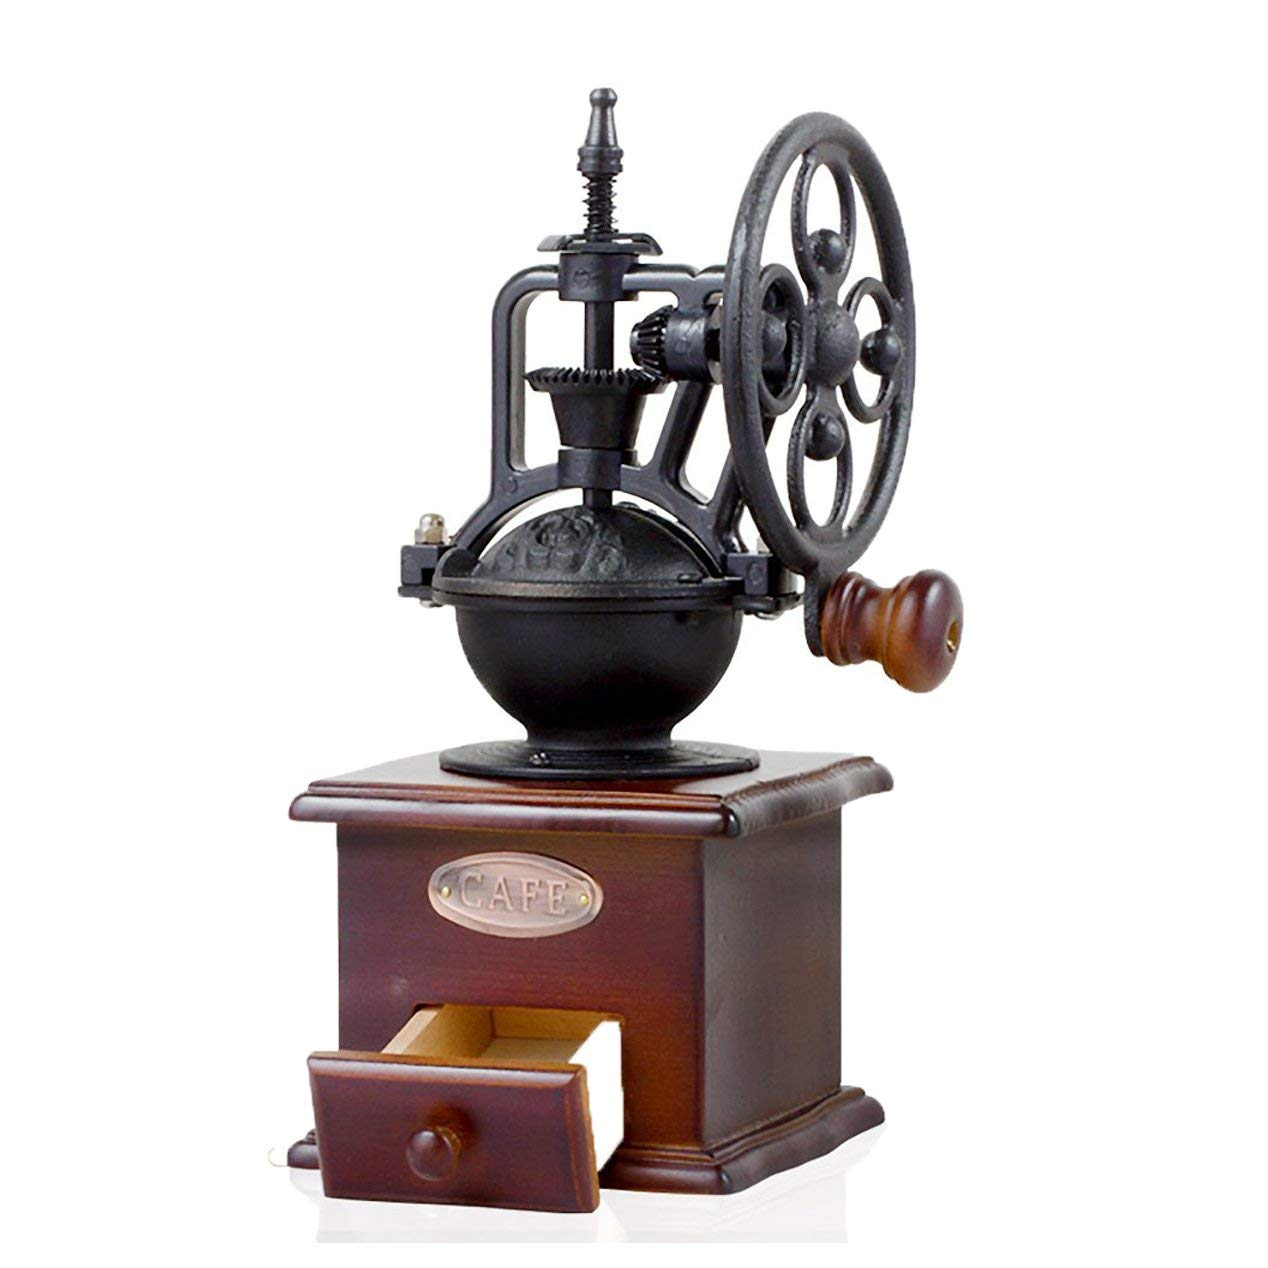 Meccion Manual Coffee Grinder, Wooden Classic Vintage Style Antique Cast Iron Hand Crank Coffee Beans Mill With Ceramic Iron Burr Core, Grind Settings and Catch Drawer